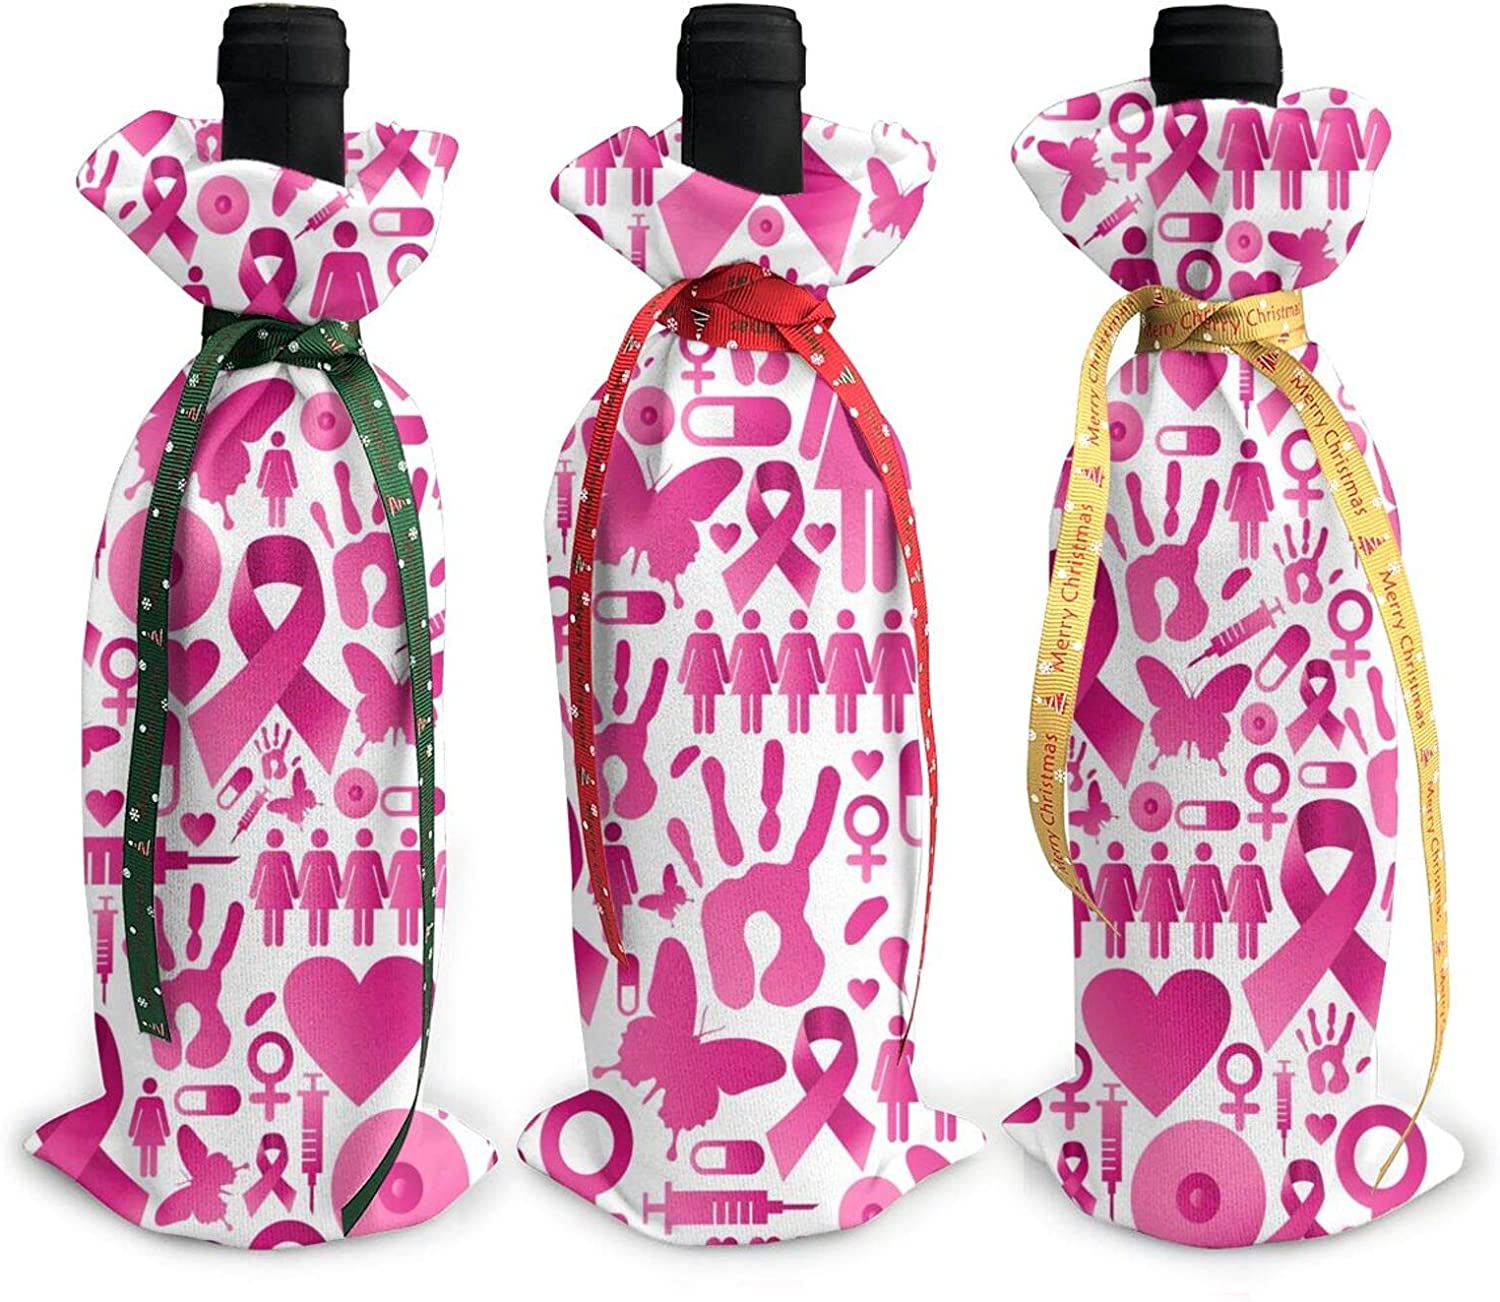 Christmas Wine Bottle Decoration Bag For New Year Wedding Wine Tasting Party Dinner Decor Holiday Ornaments 3pcs Wine Bottle Cover Bags,Xmas Gift Breast Cancer Awareness Pink Ribbons Butterfly